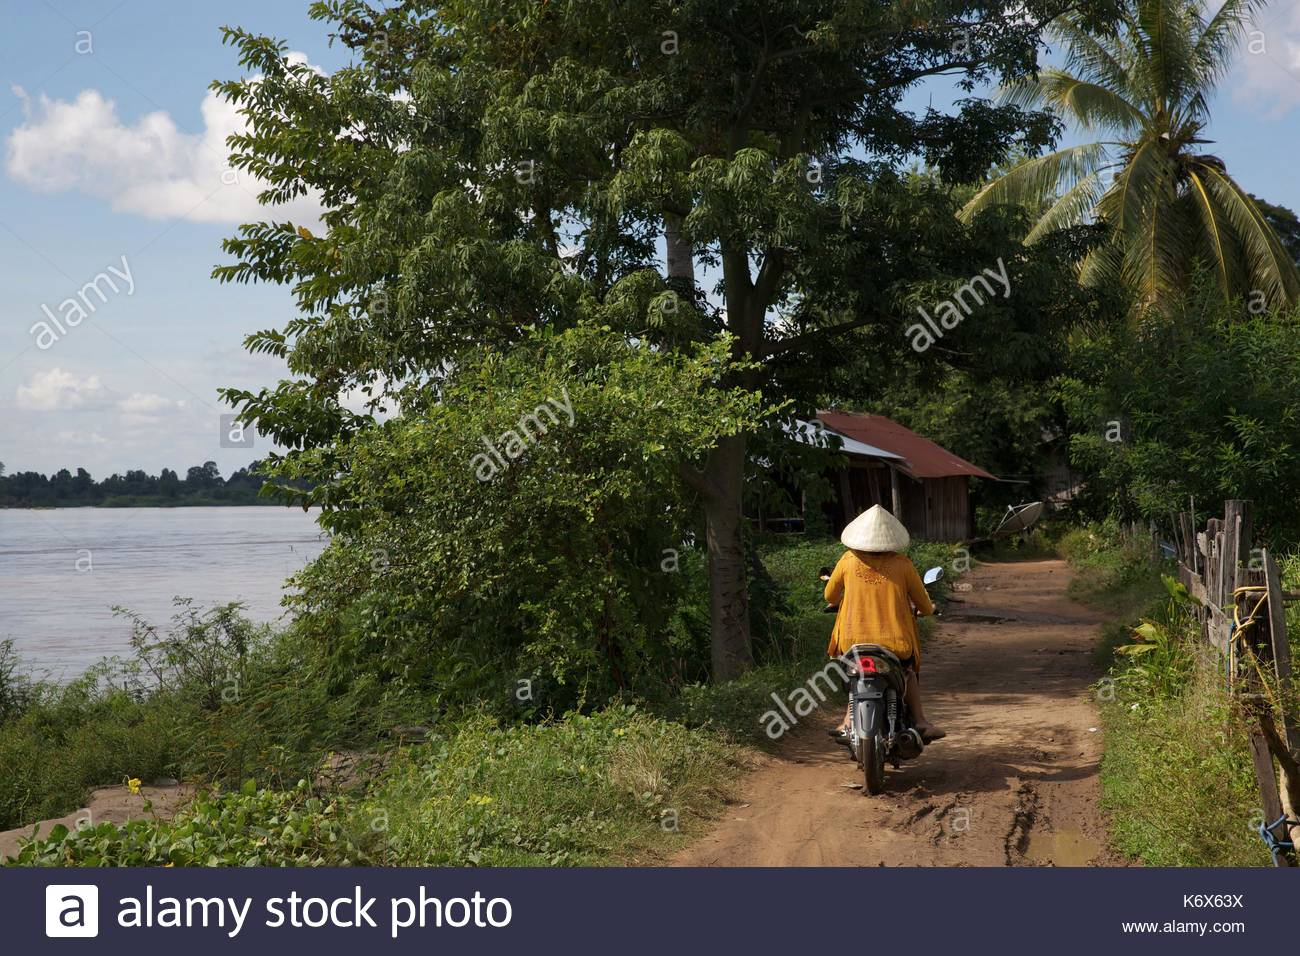 Tham Phu Khiaw Don Khong, Don Khong Stock Photos & Don Khong Stock Images - Page 2 - Alamy